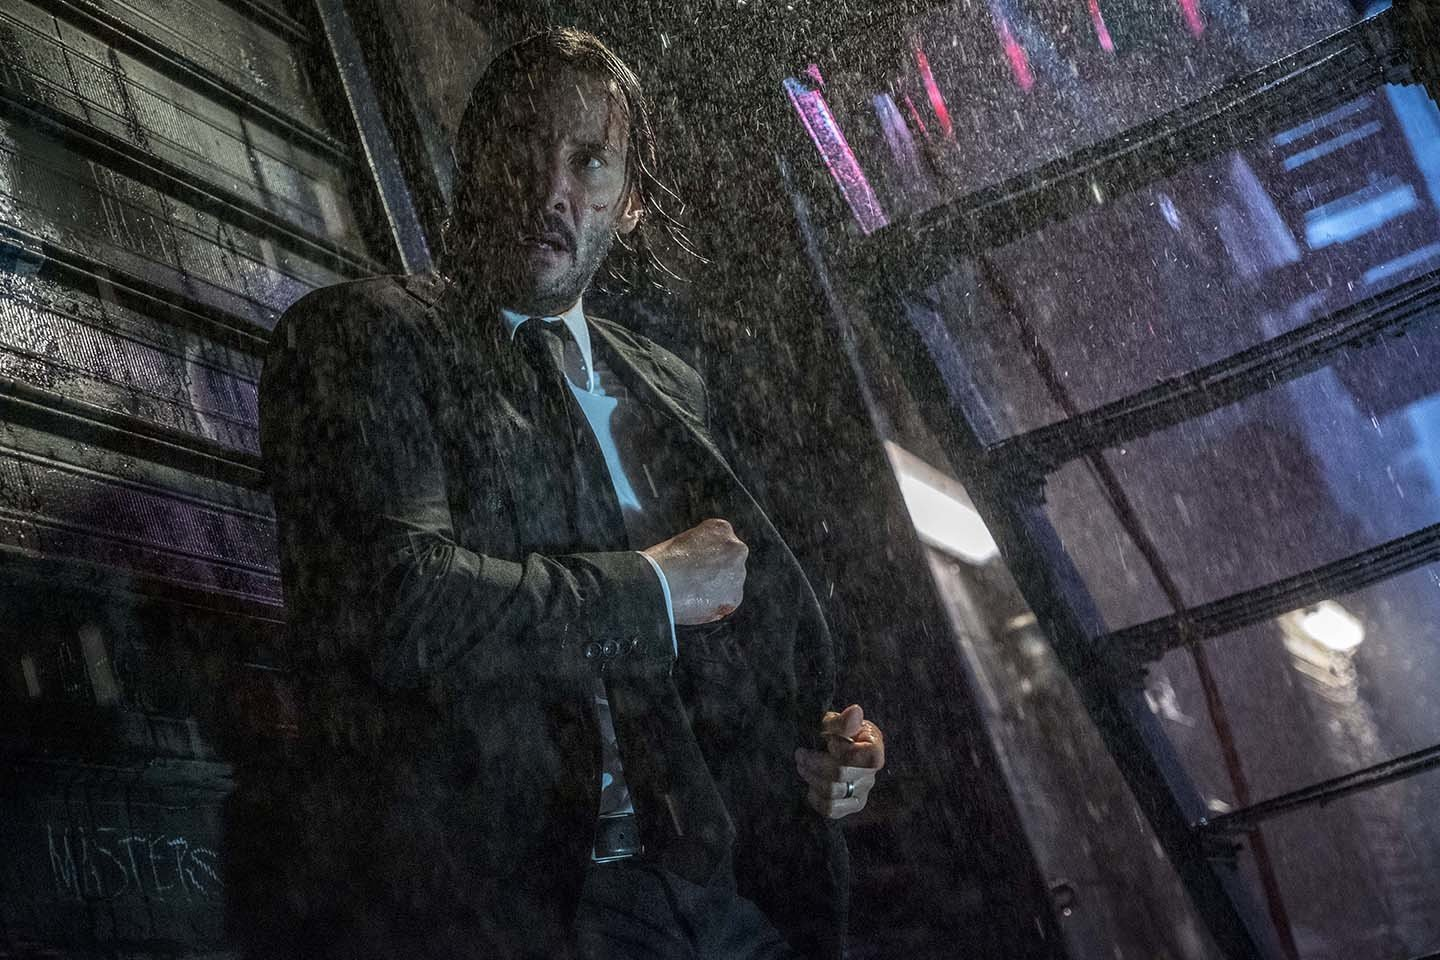 Slayin' in the Rain: John Wick Chapter 3 — Parabellum - The American